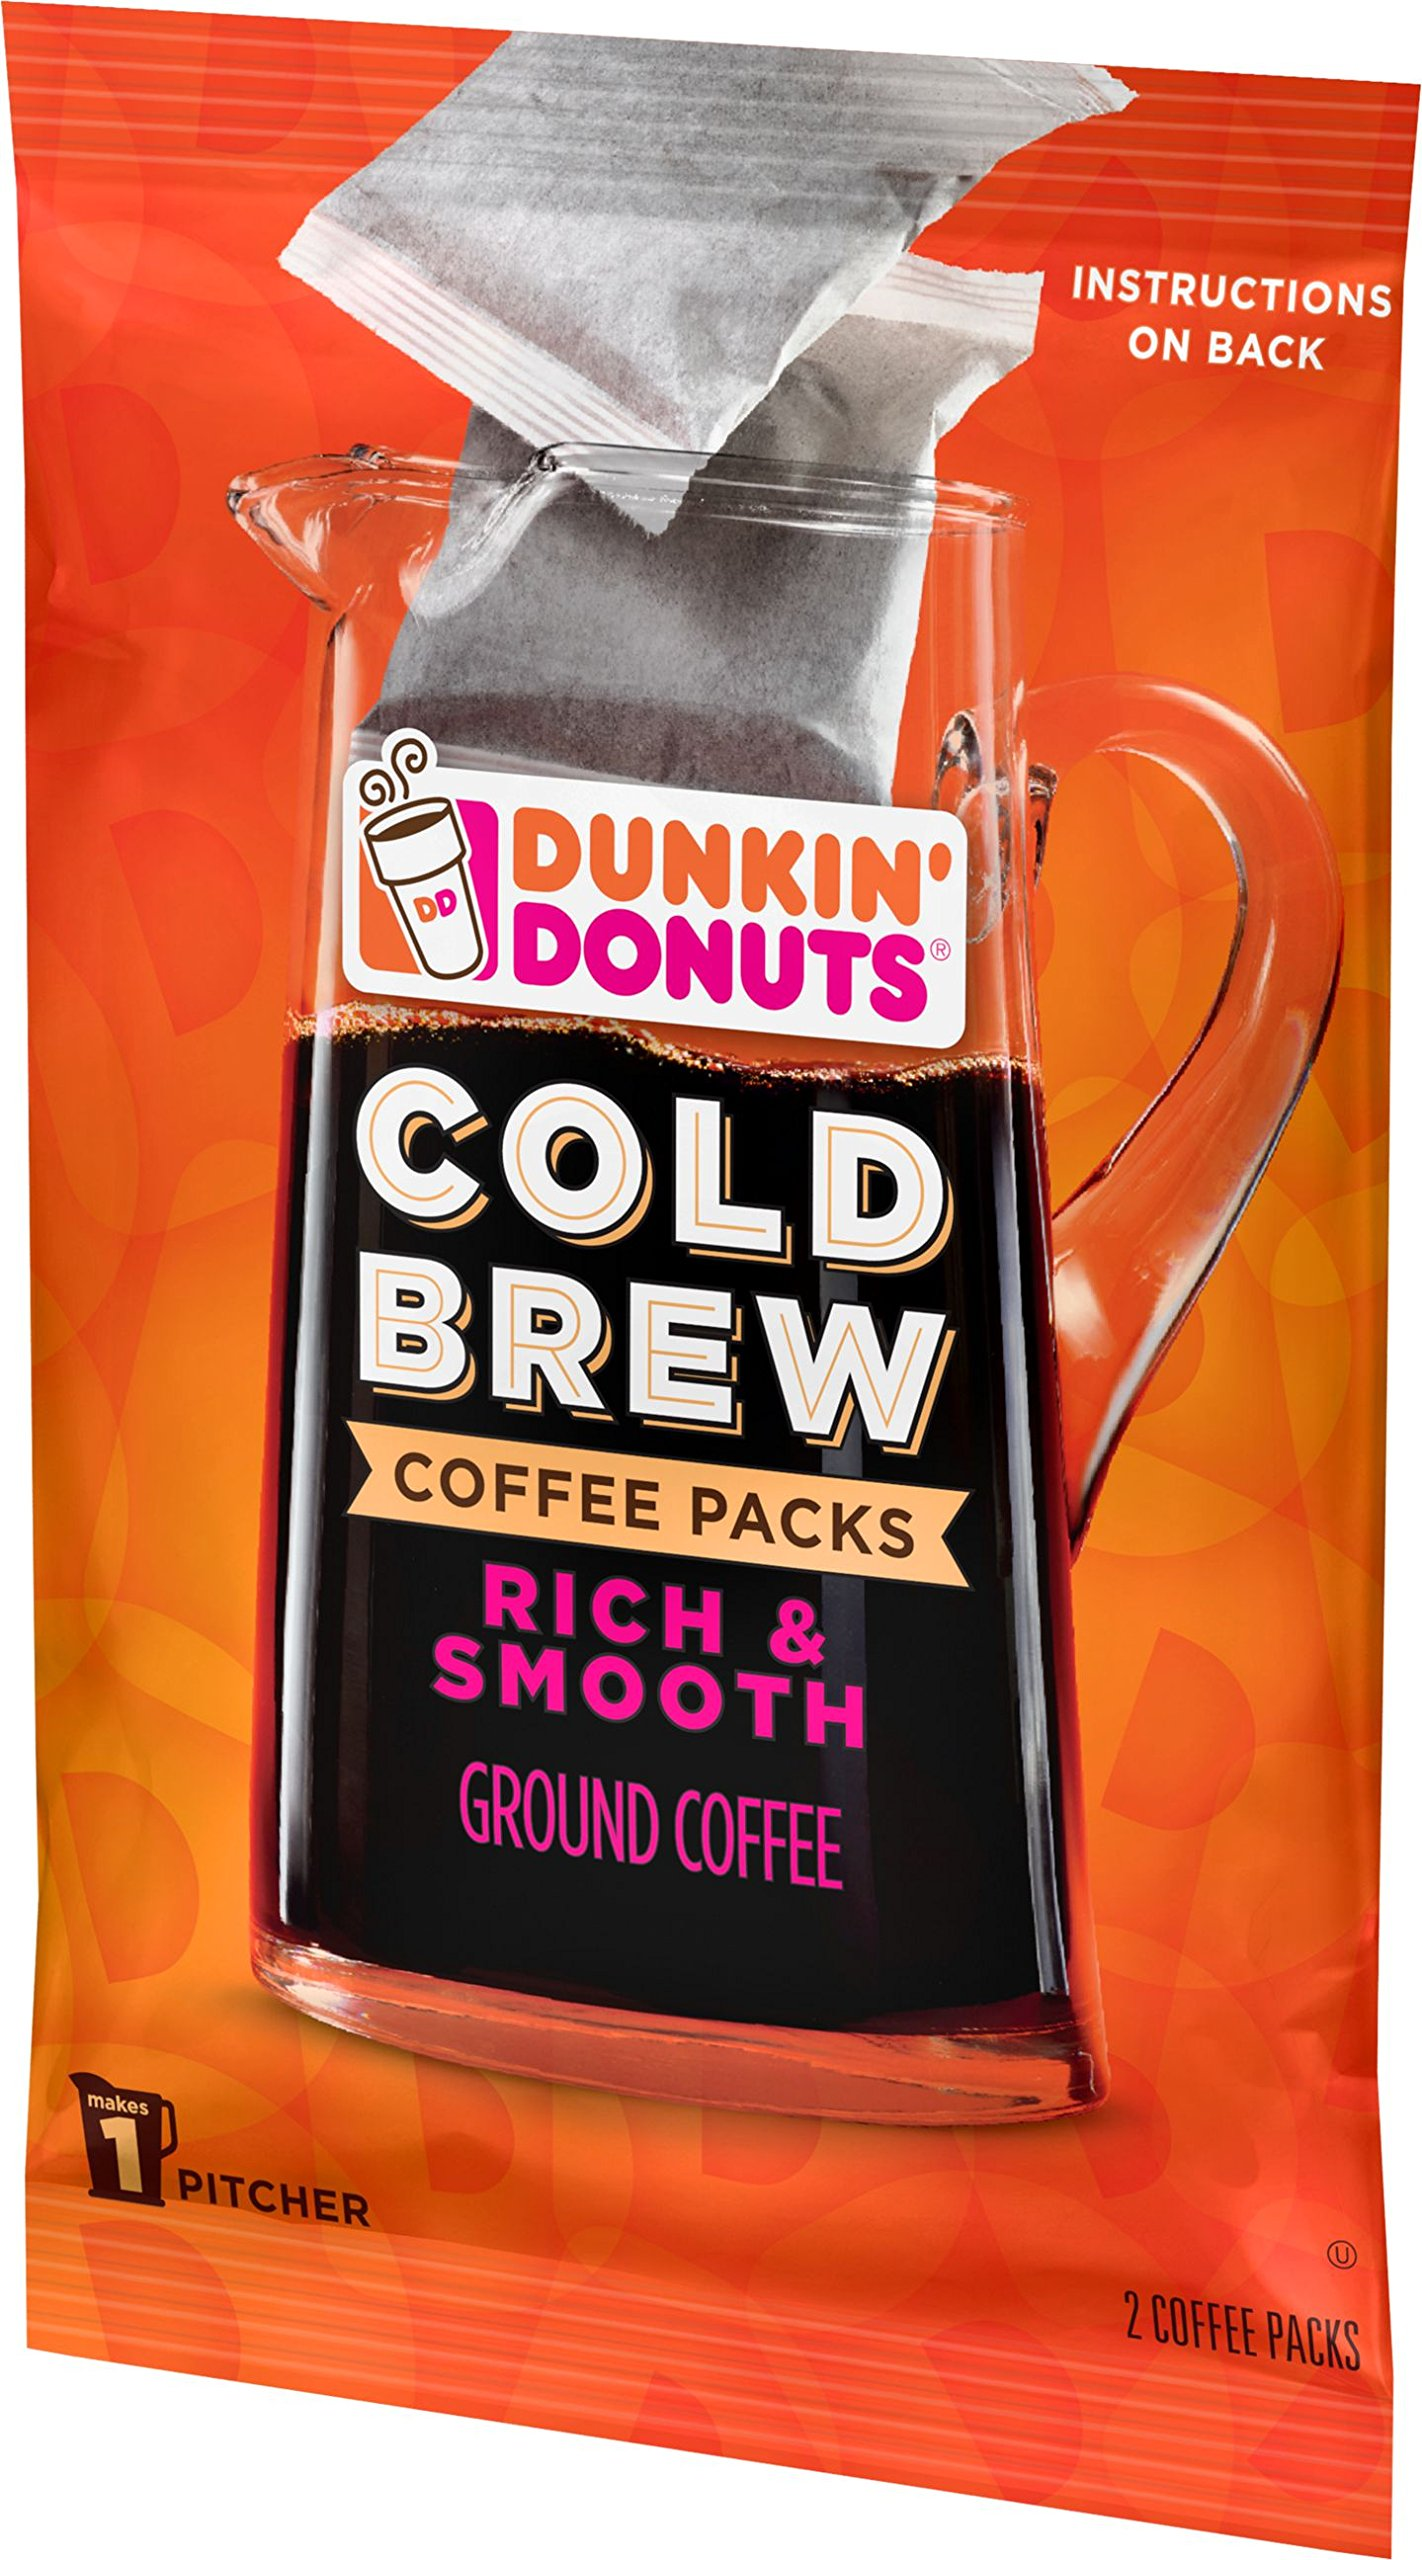 Dunkin' Donuts Cold Brew Coffee Packs, Smooth & Rich Ground Coffee,8.46 Ounce (Pack of 6) by Dunkin' Donuts